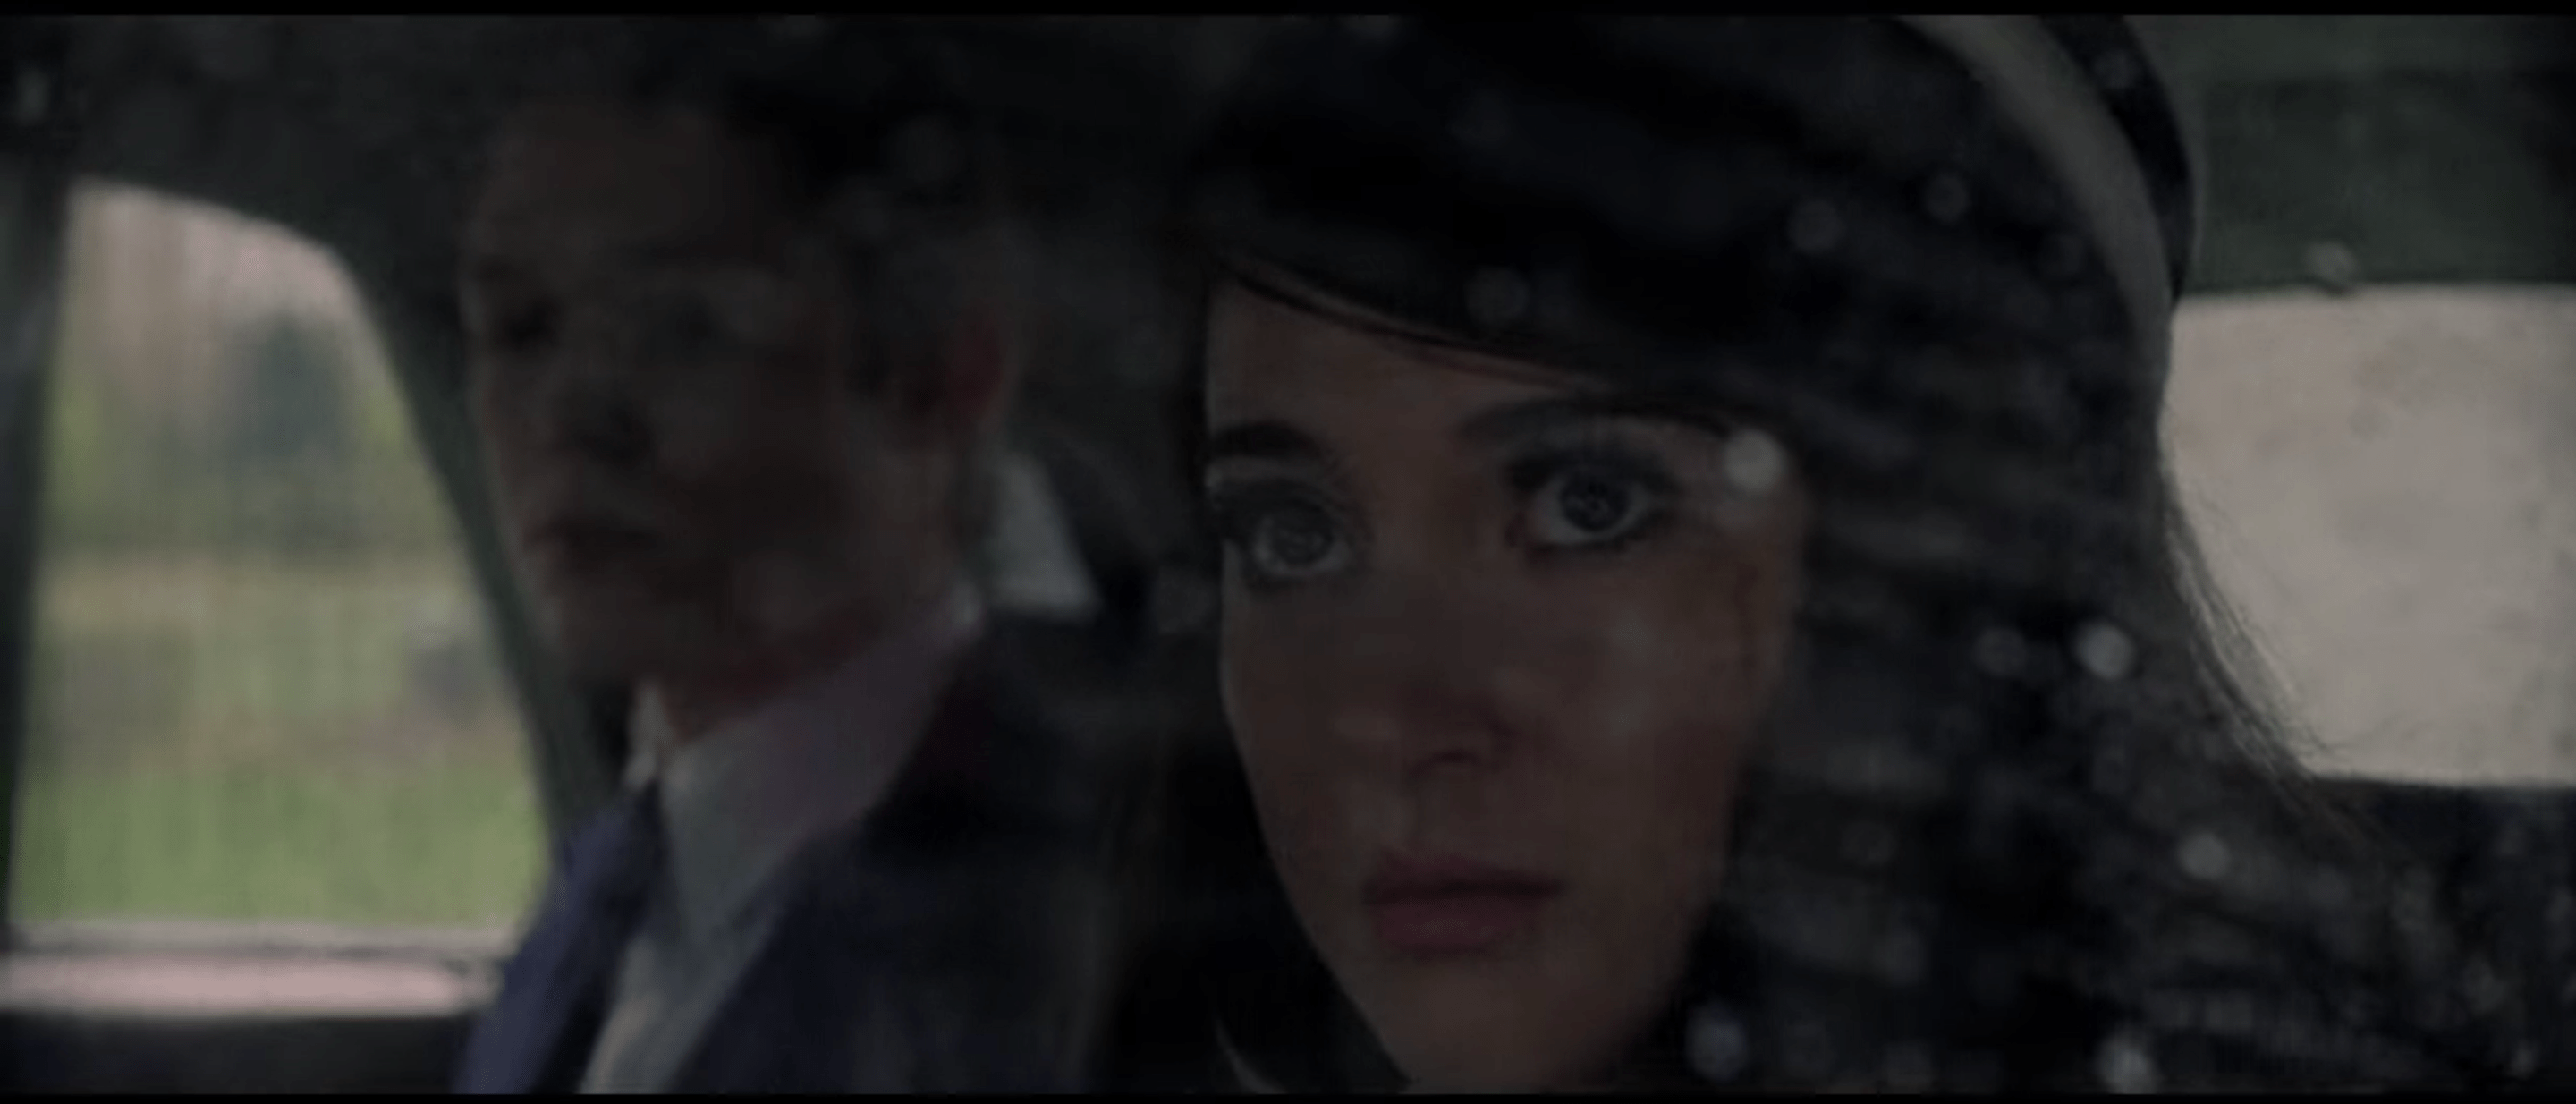 Jennifer, a scar visible below her eye, looking out and up through a rain-spotted car window. Lawrence, wearing a suit and tie